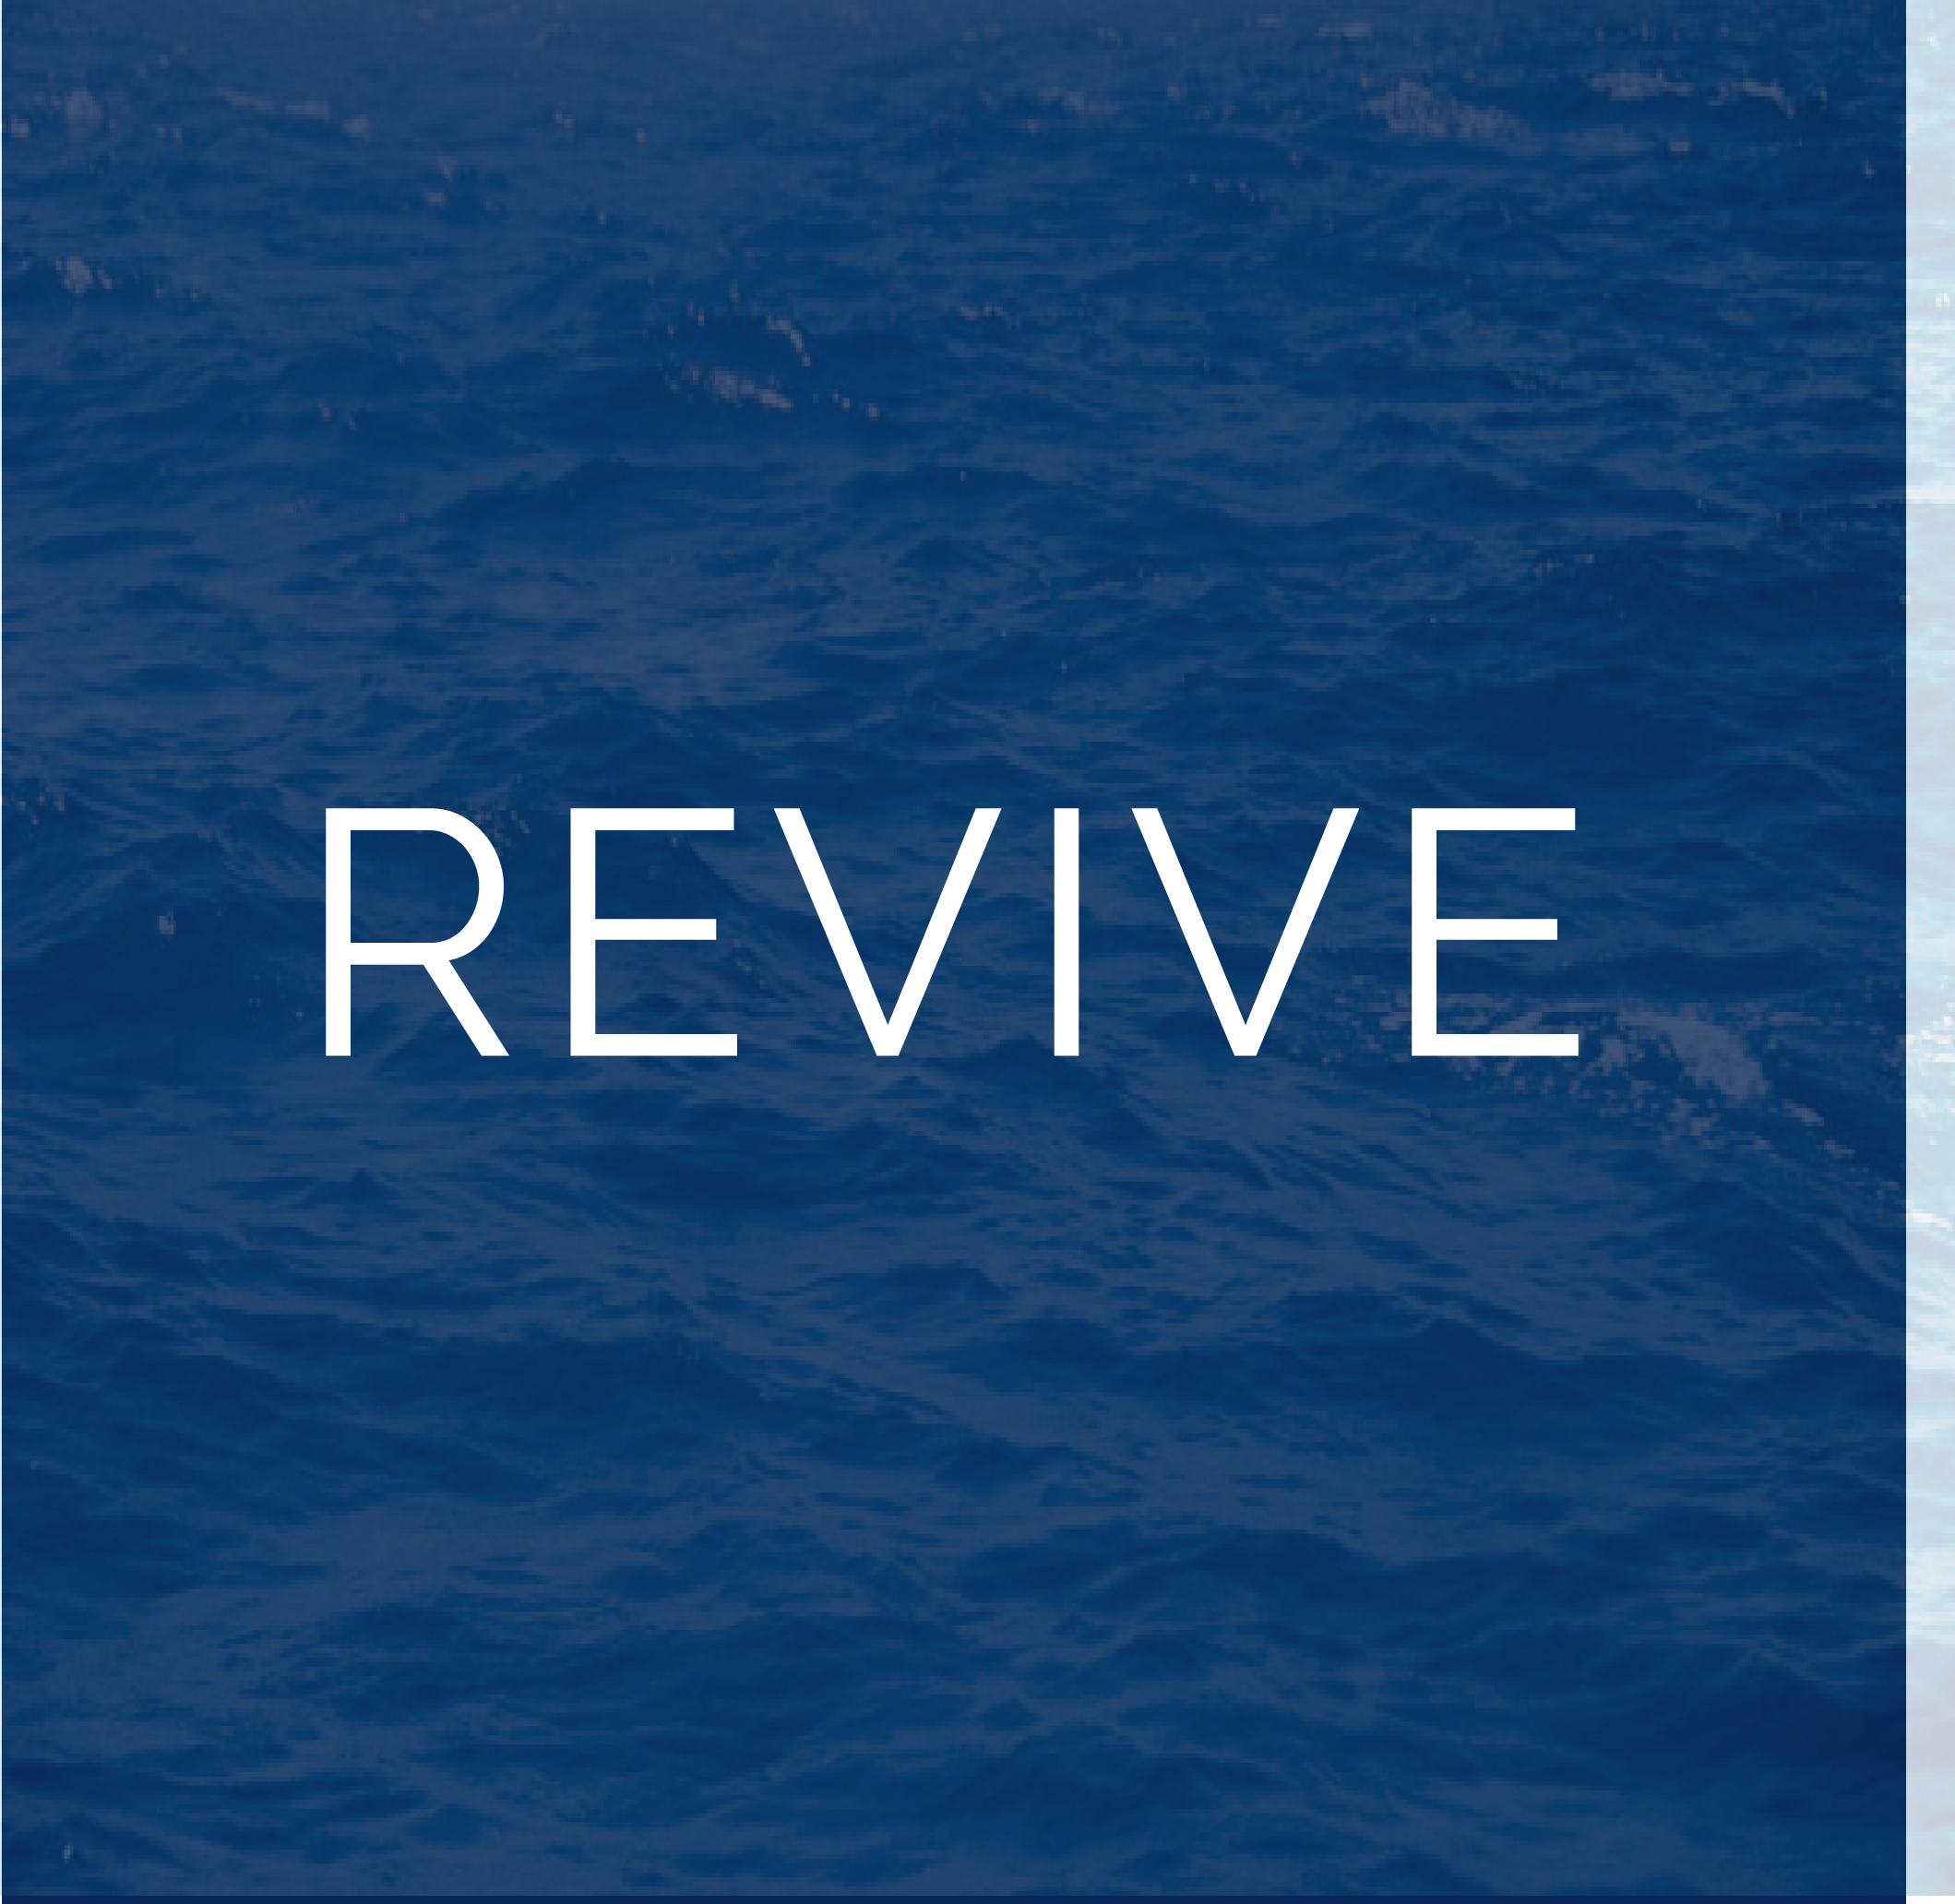 An icon representing Revive